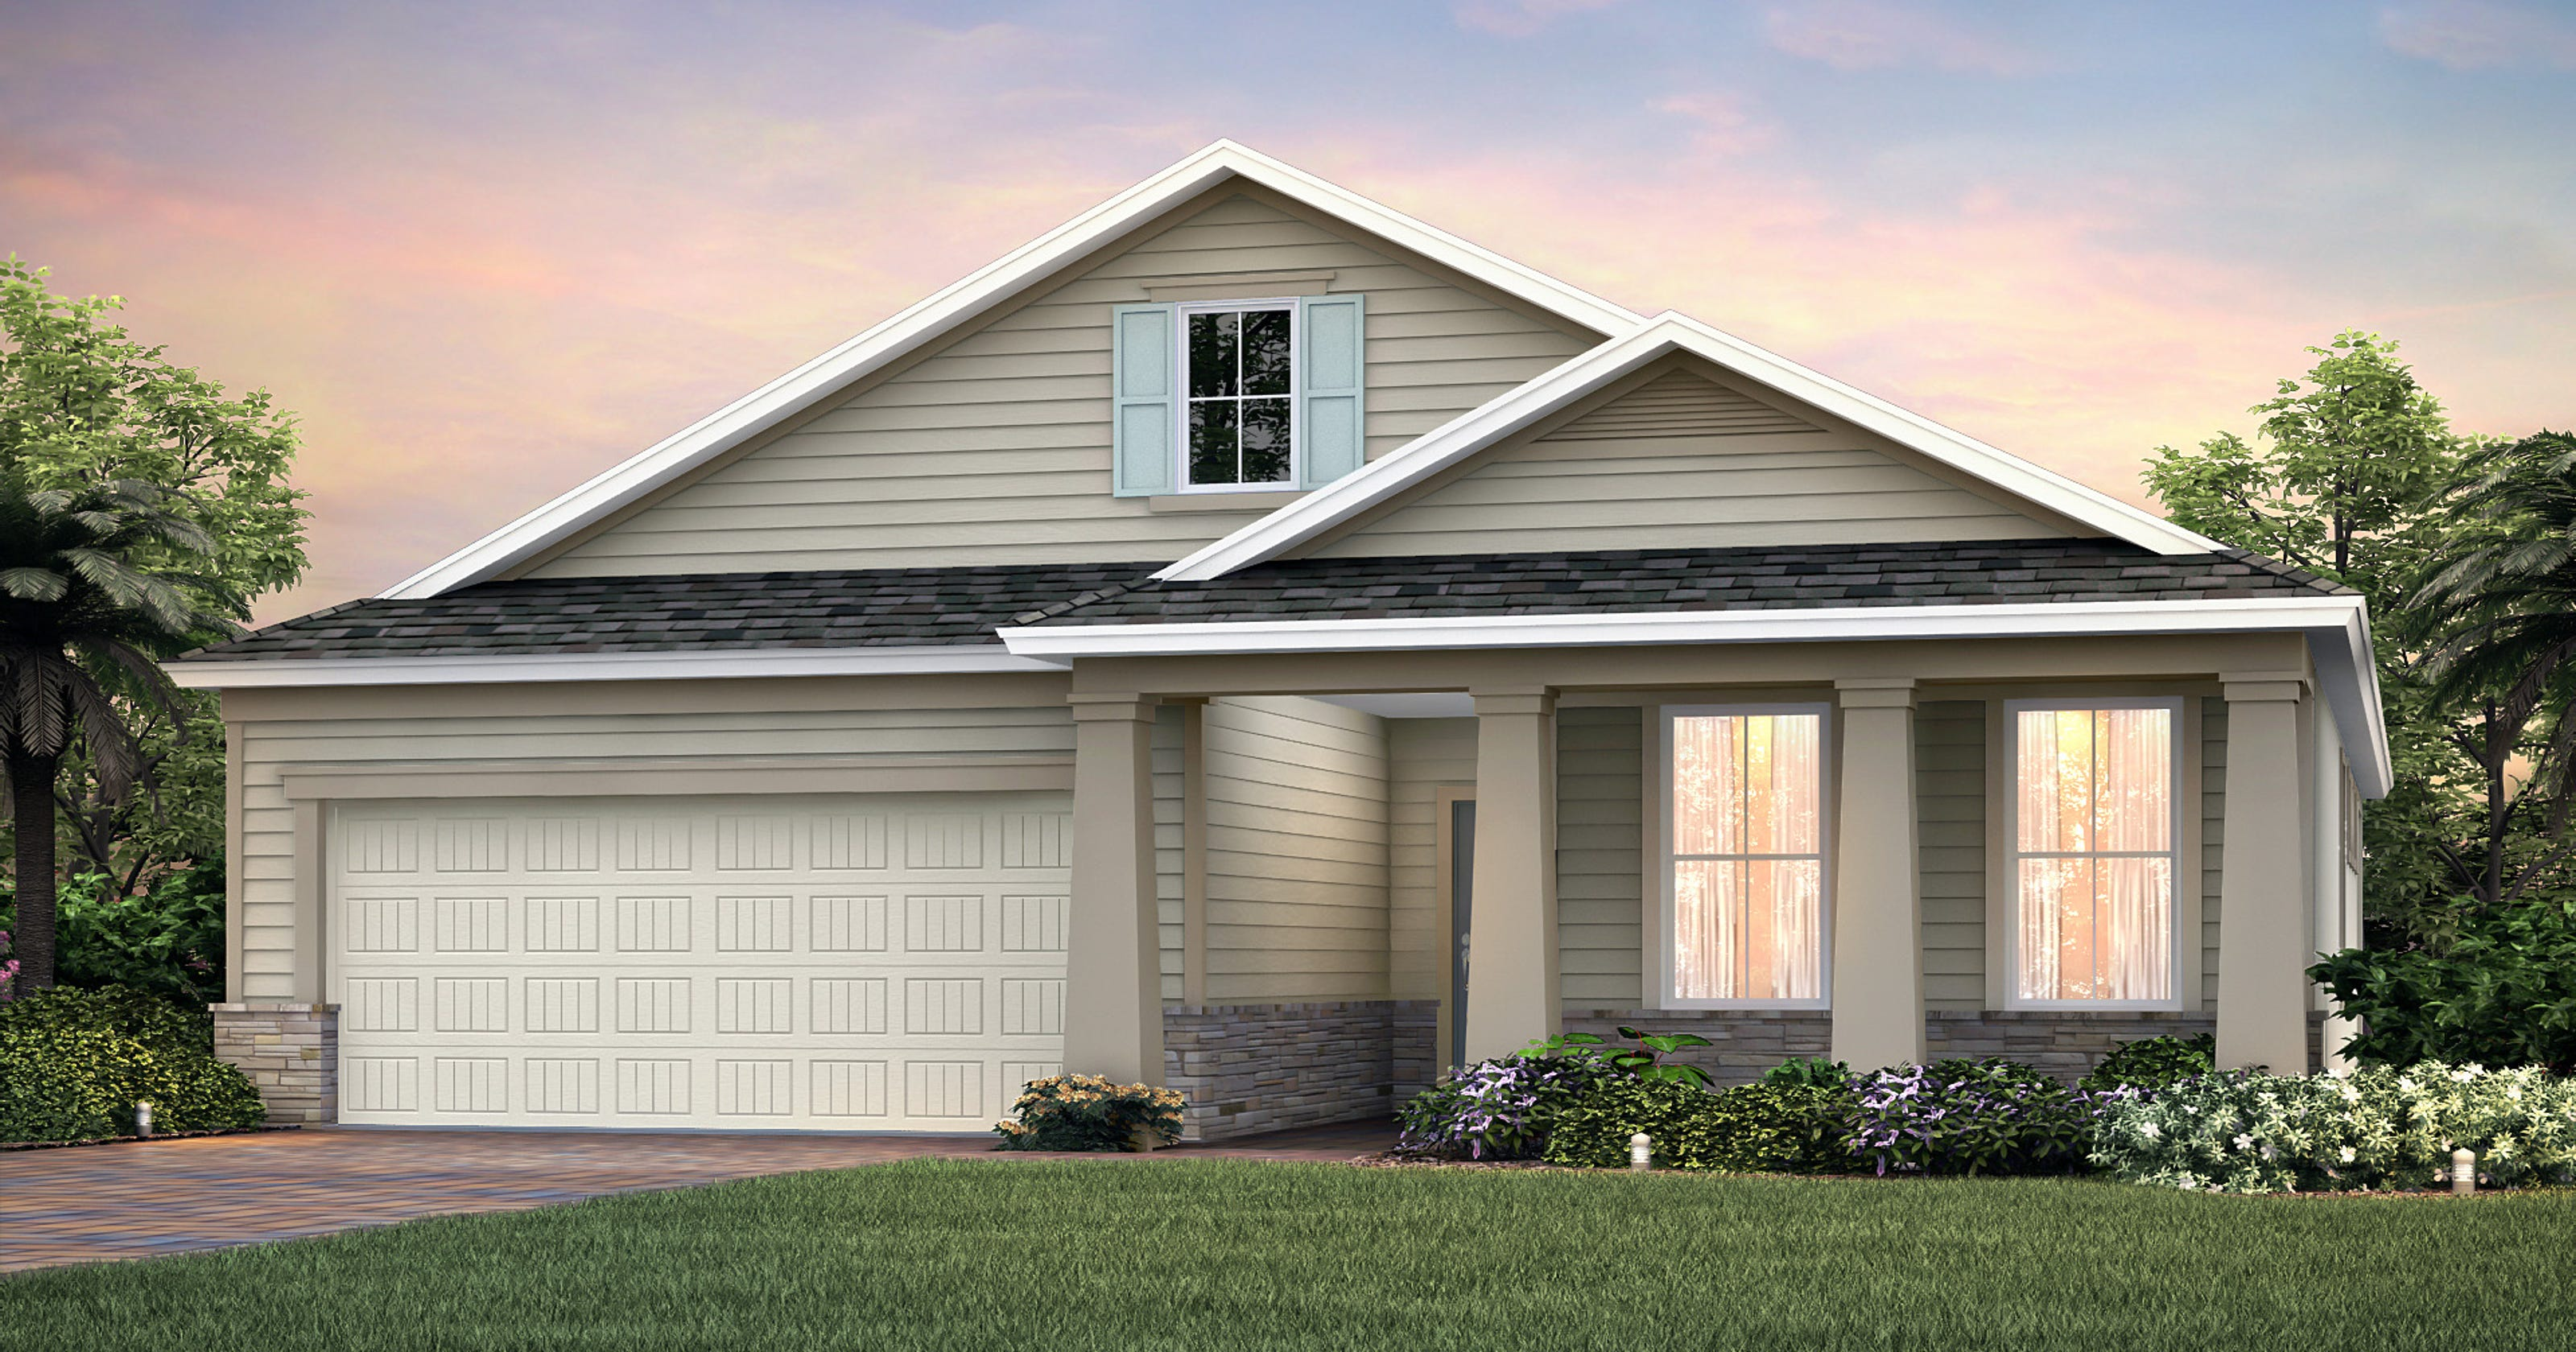 Pulte homes parkside models near completion at babcock ranch - Model homes near me ...